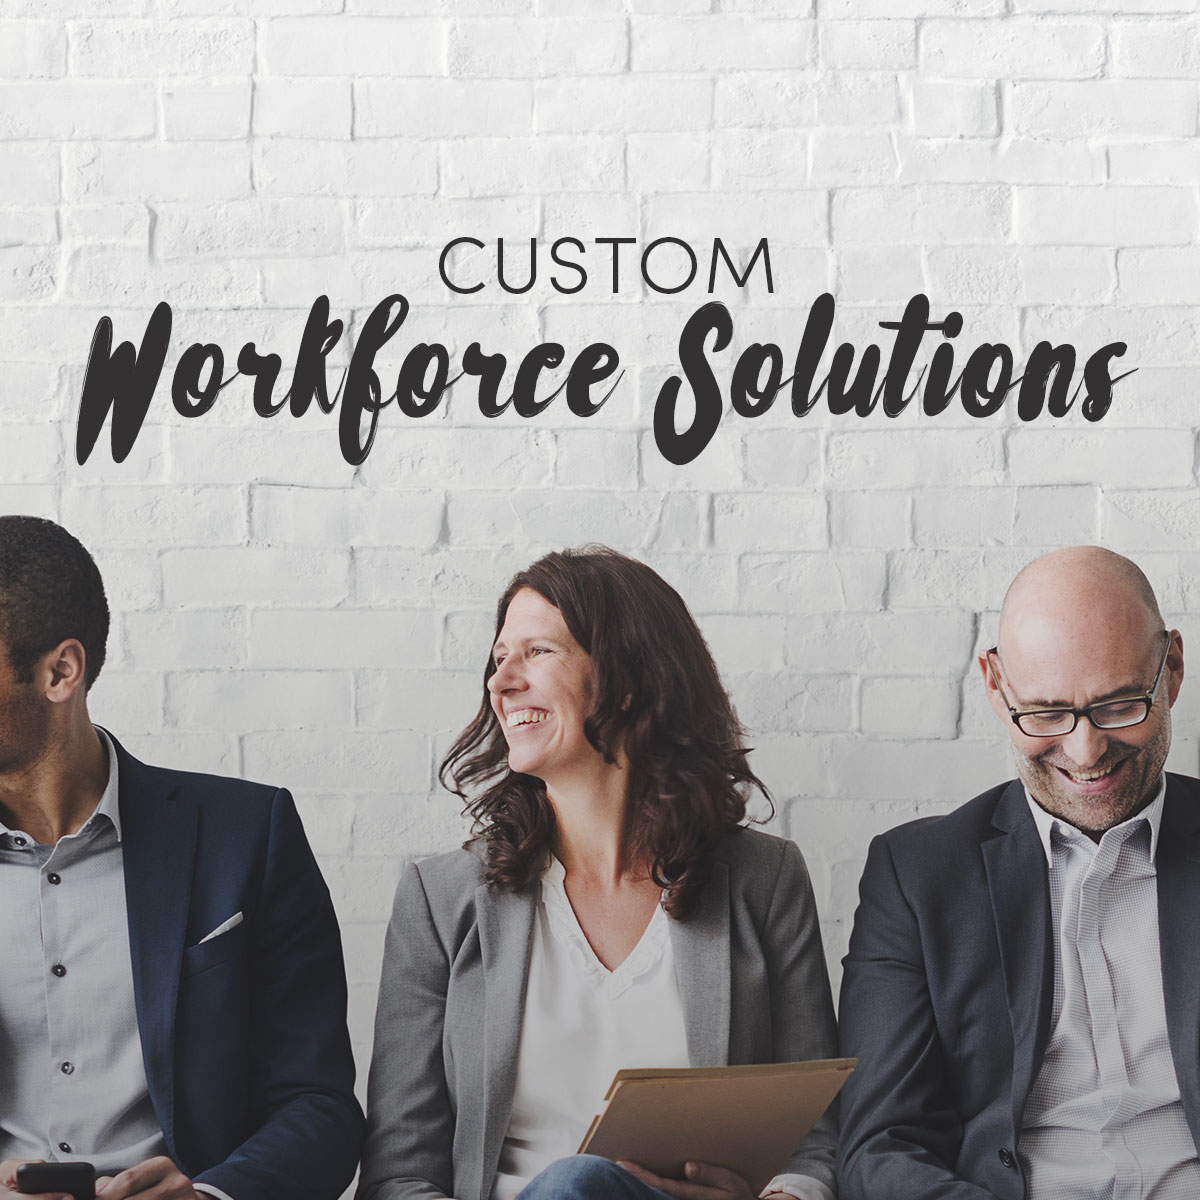 Stones Throw Services Tiles Custom Workforce Solutions